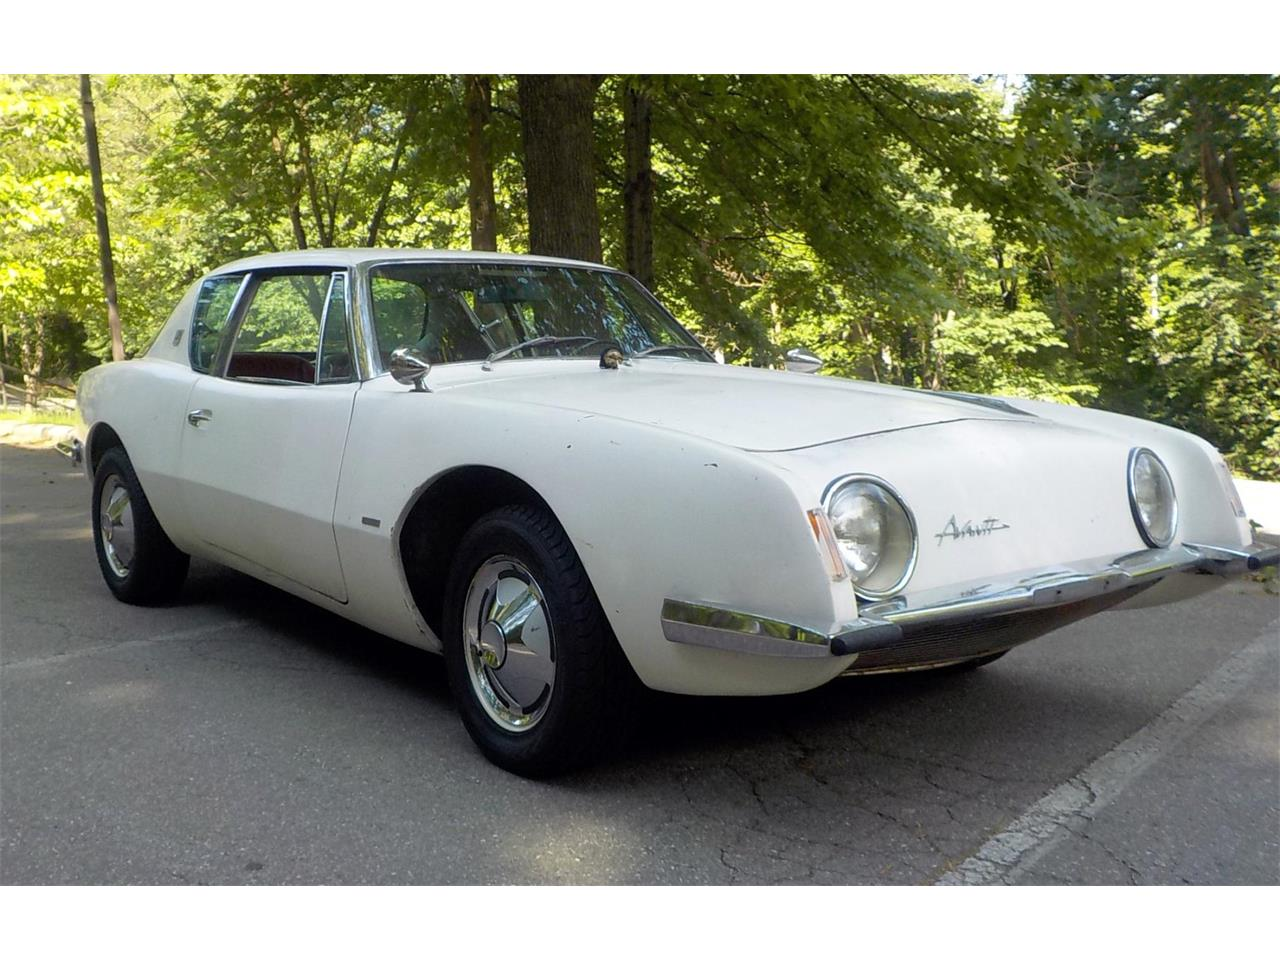 Large Picture of Classic '63 Studebaker Avanti located in Asheville North Carolina Auction Vehicle - QBNO